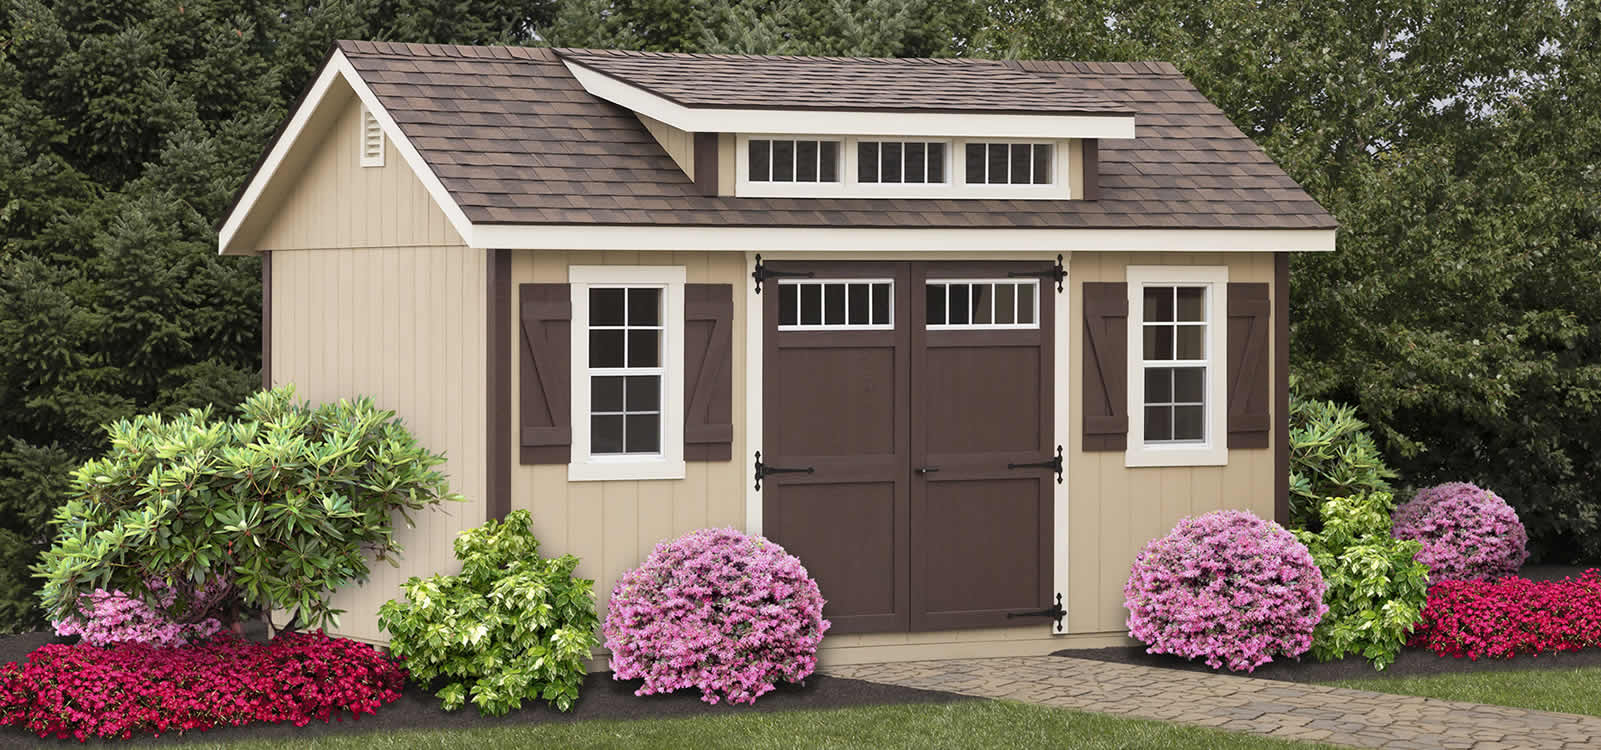 Brookside Structures Chester Springs image 2